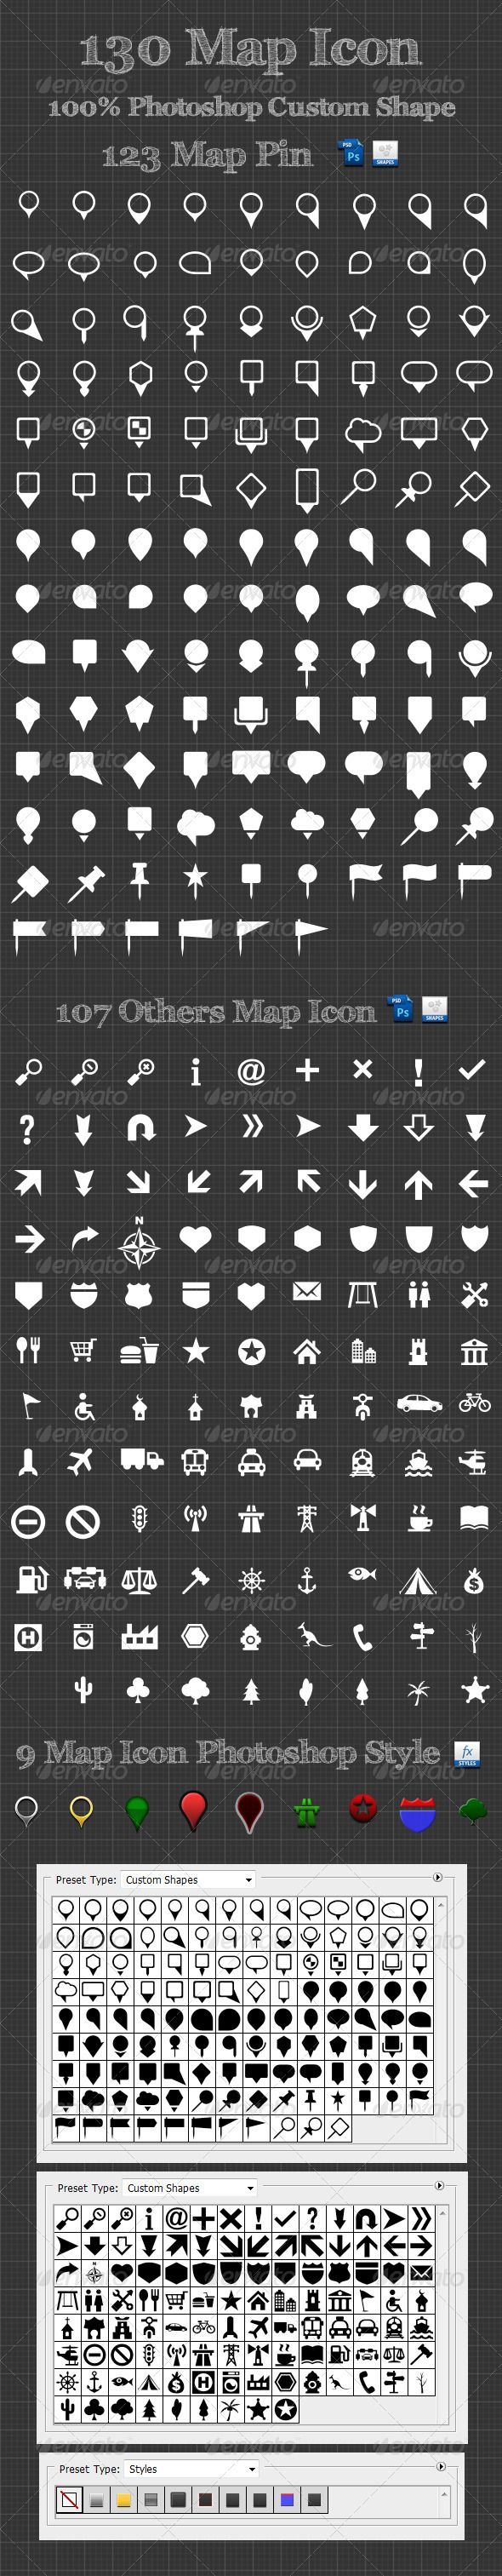 130 Map Icon Photoshop Custom Shapes - GraphicRiver Item for Sale